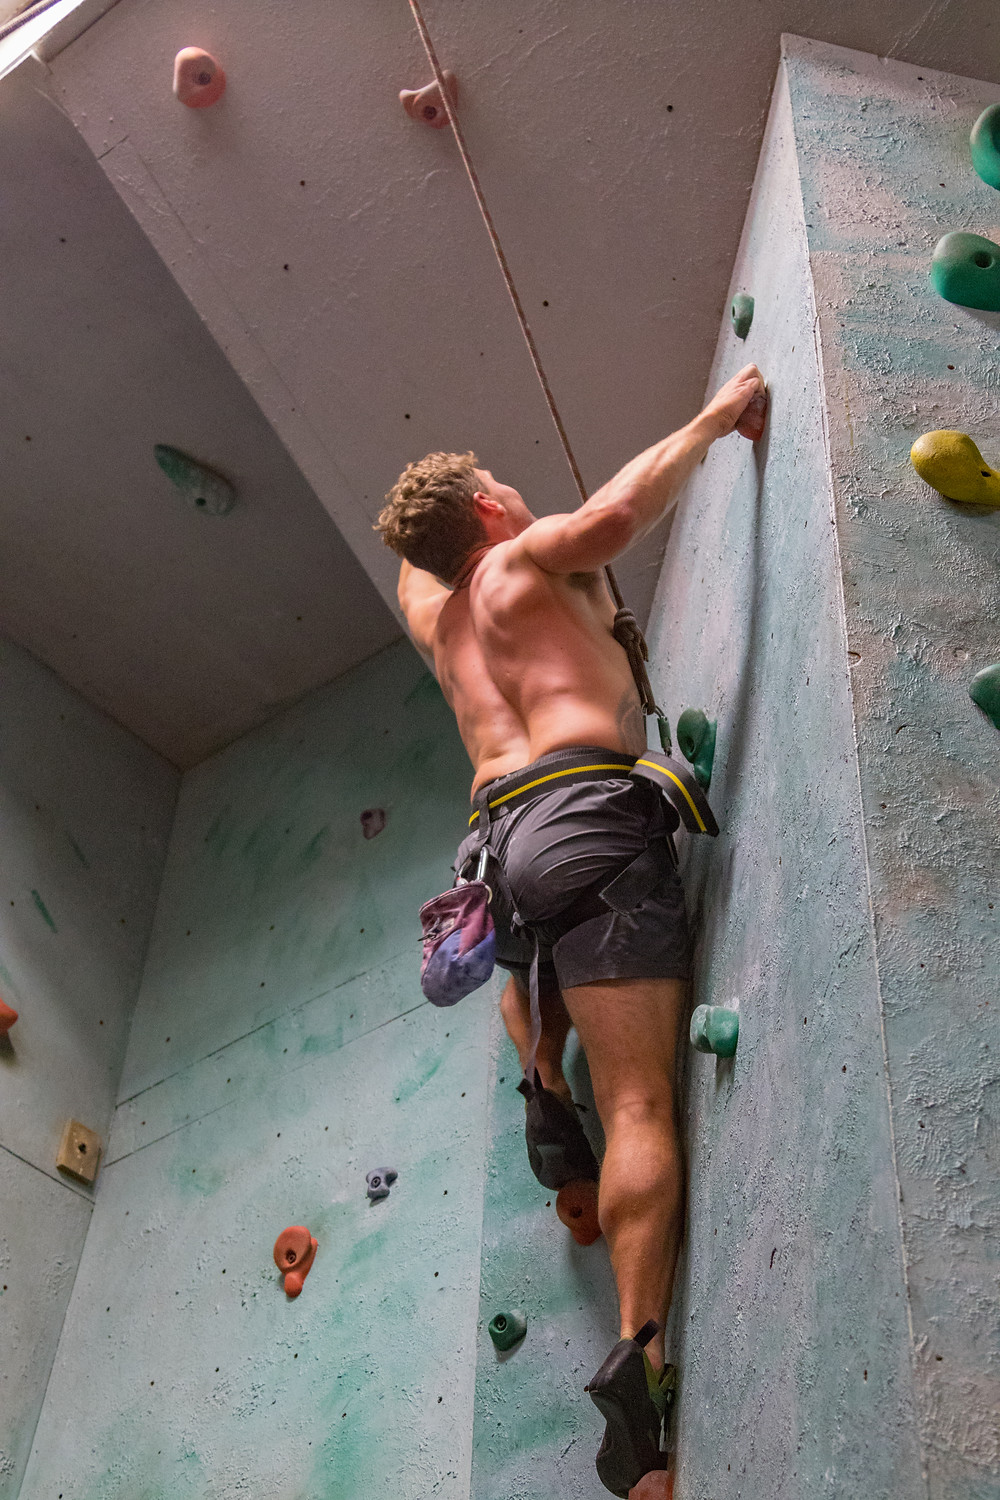 Attempting some of the climbs at the indoor climbing wall!